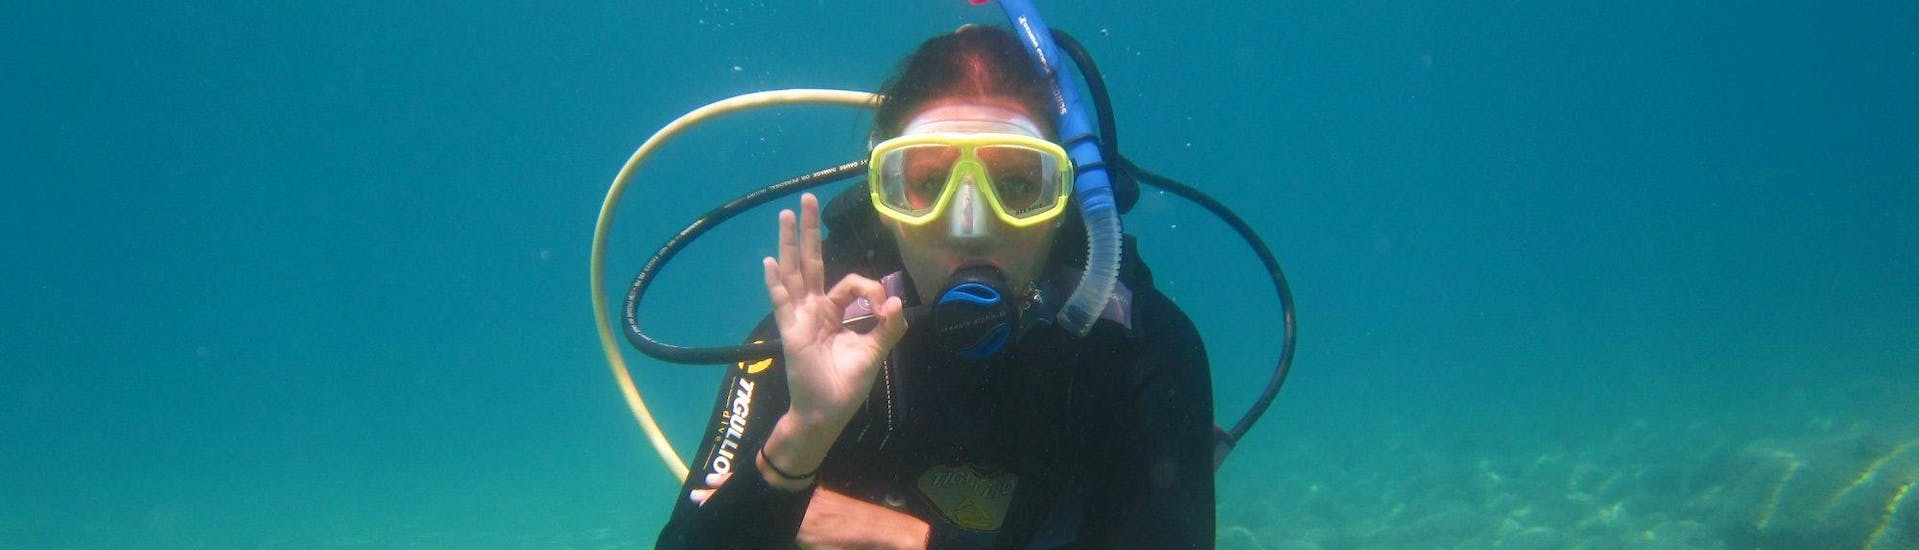 A participant or the Discover Scuba Diving at Santa Barbara Beach for Beginners with Hercules Marine Activities Corfu is posing for a photo during her first scuba dive in Corfu.